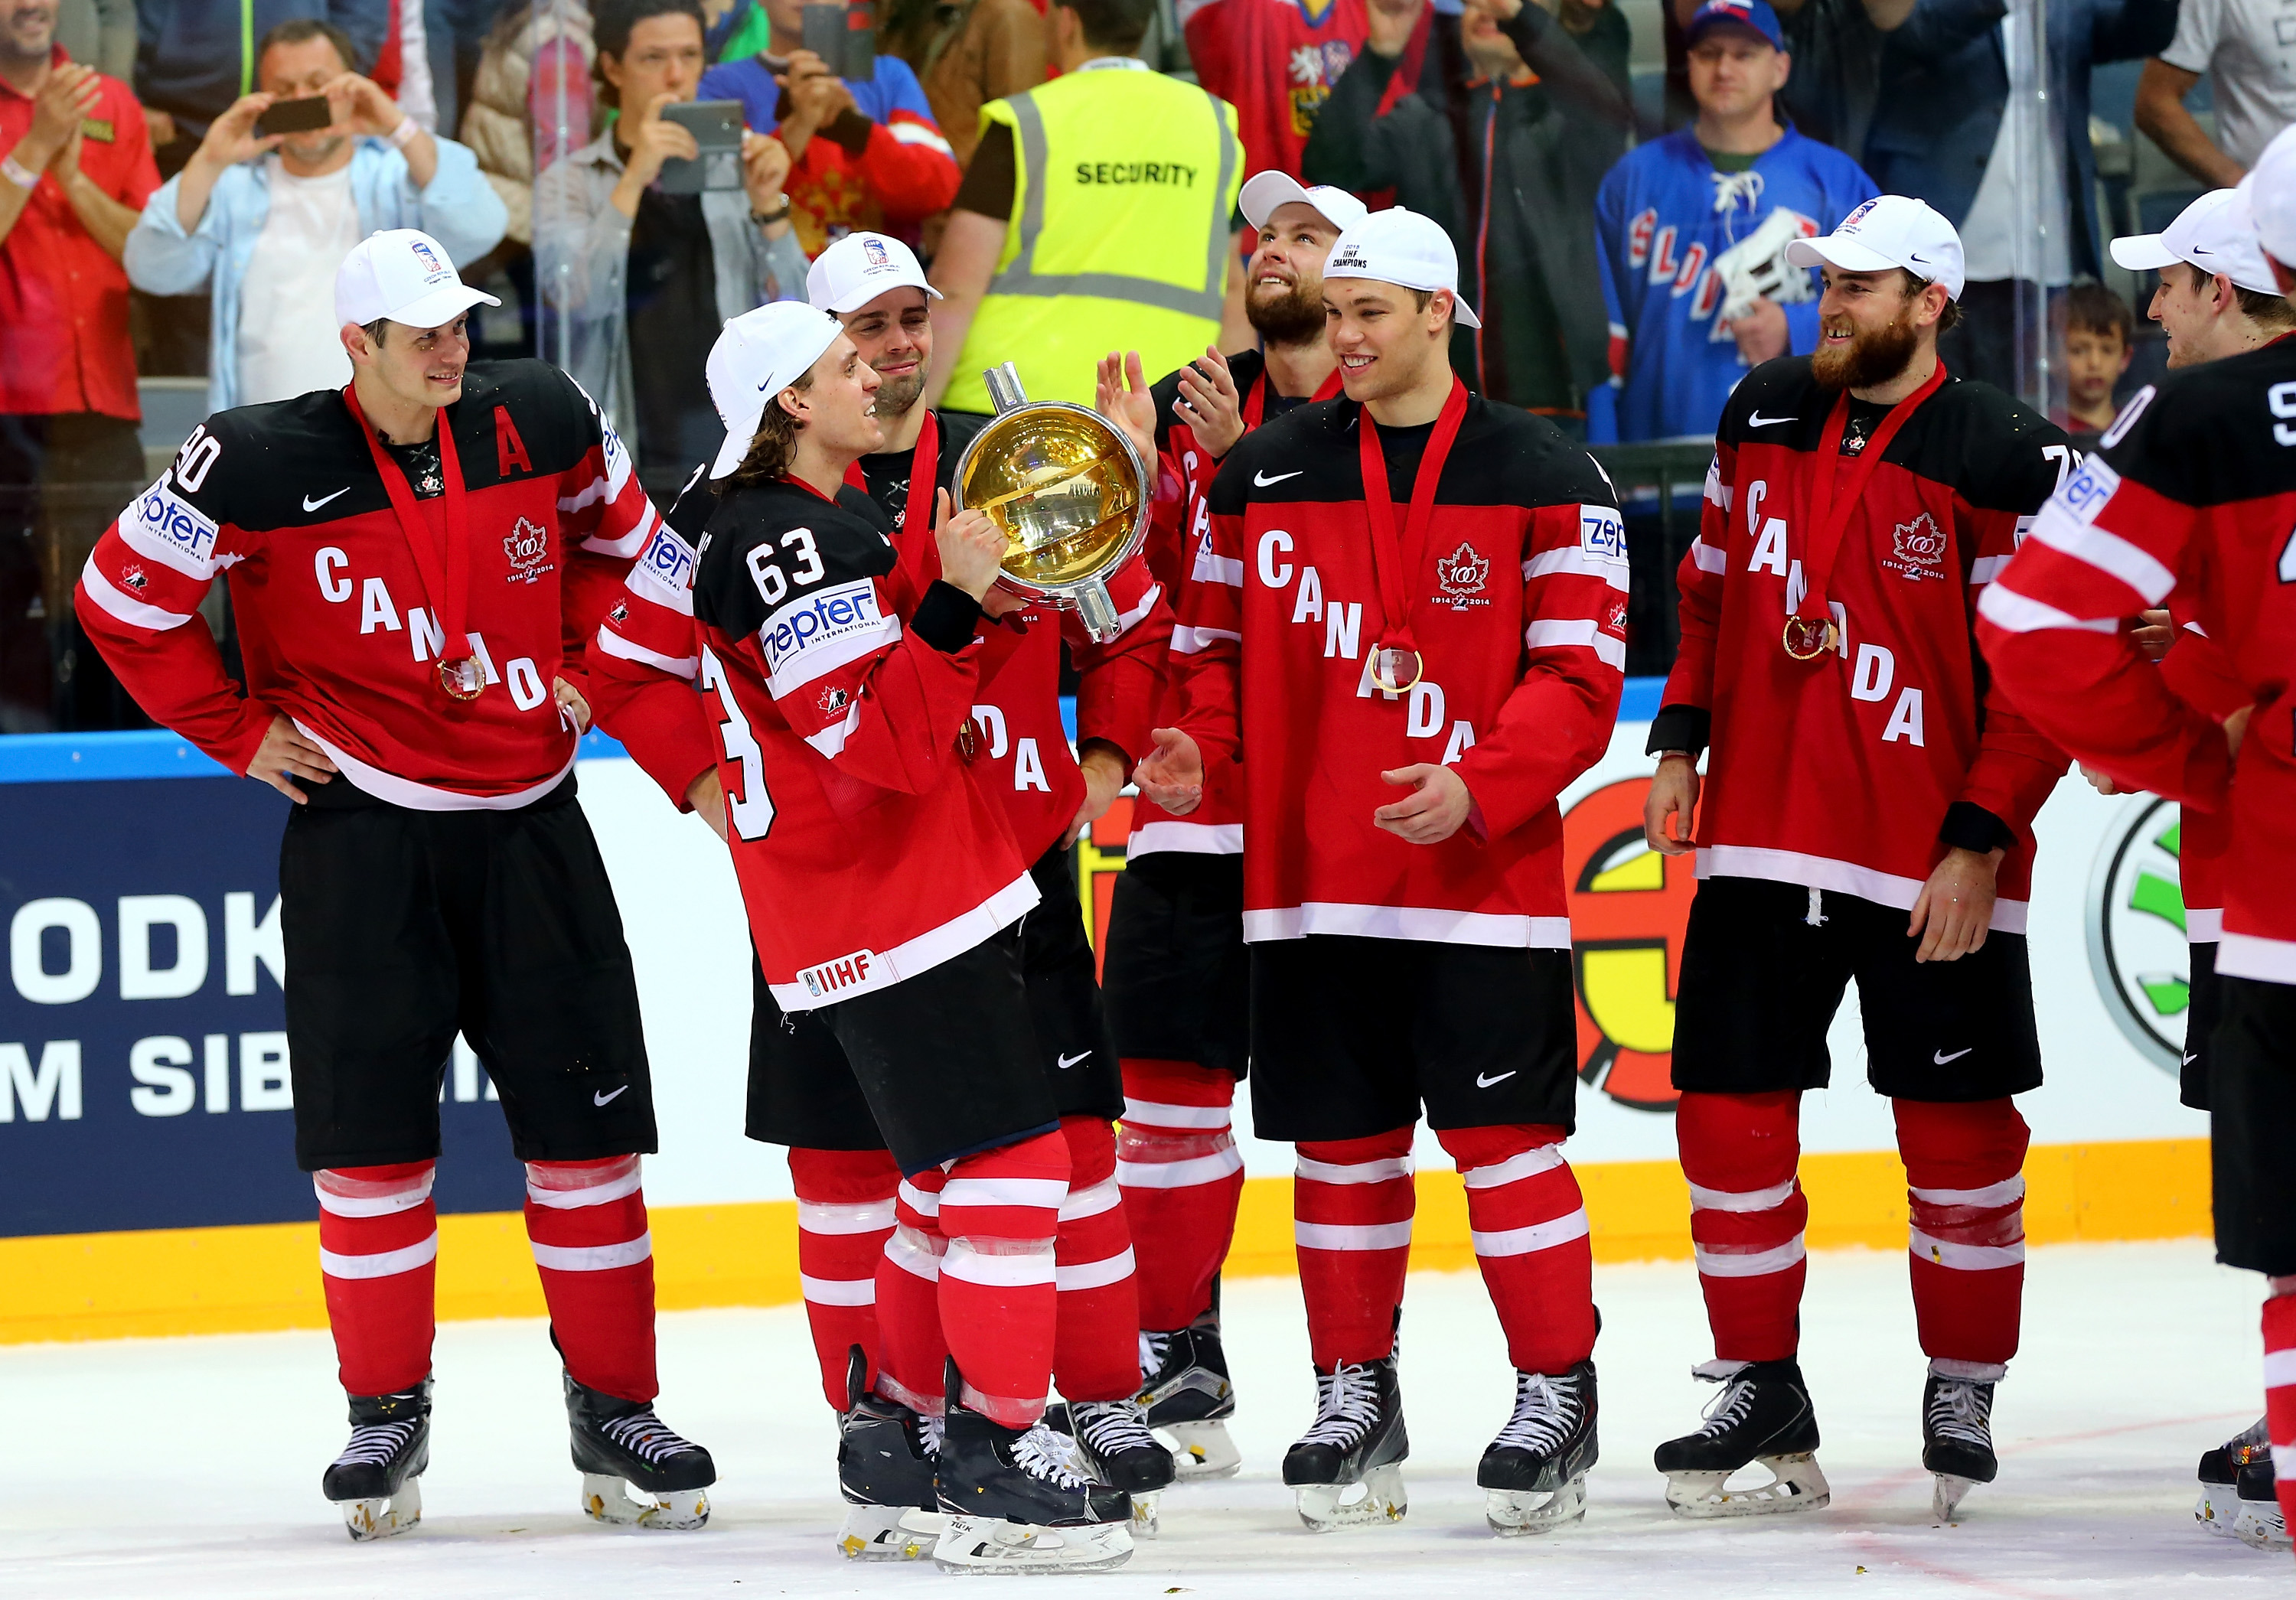 Tyler Ennis of the Sabres takes his turn with the World Championship trophy. Ennis had a goal and assist in Canada's 6-1 win over Russia.